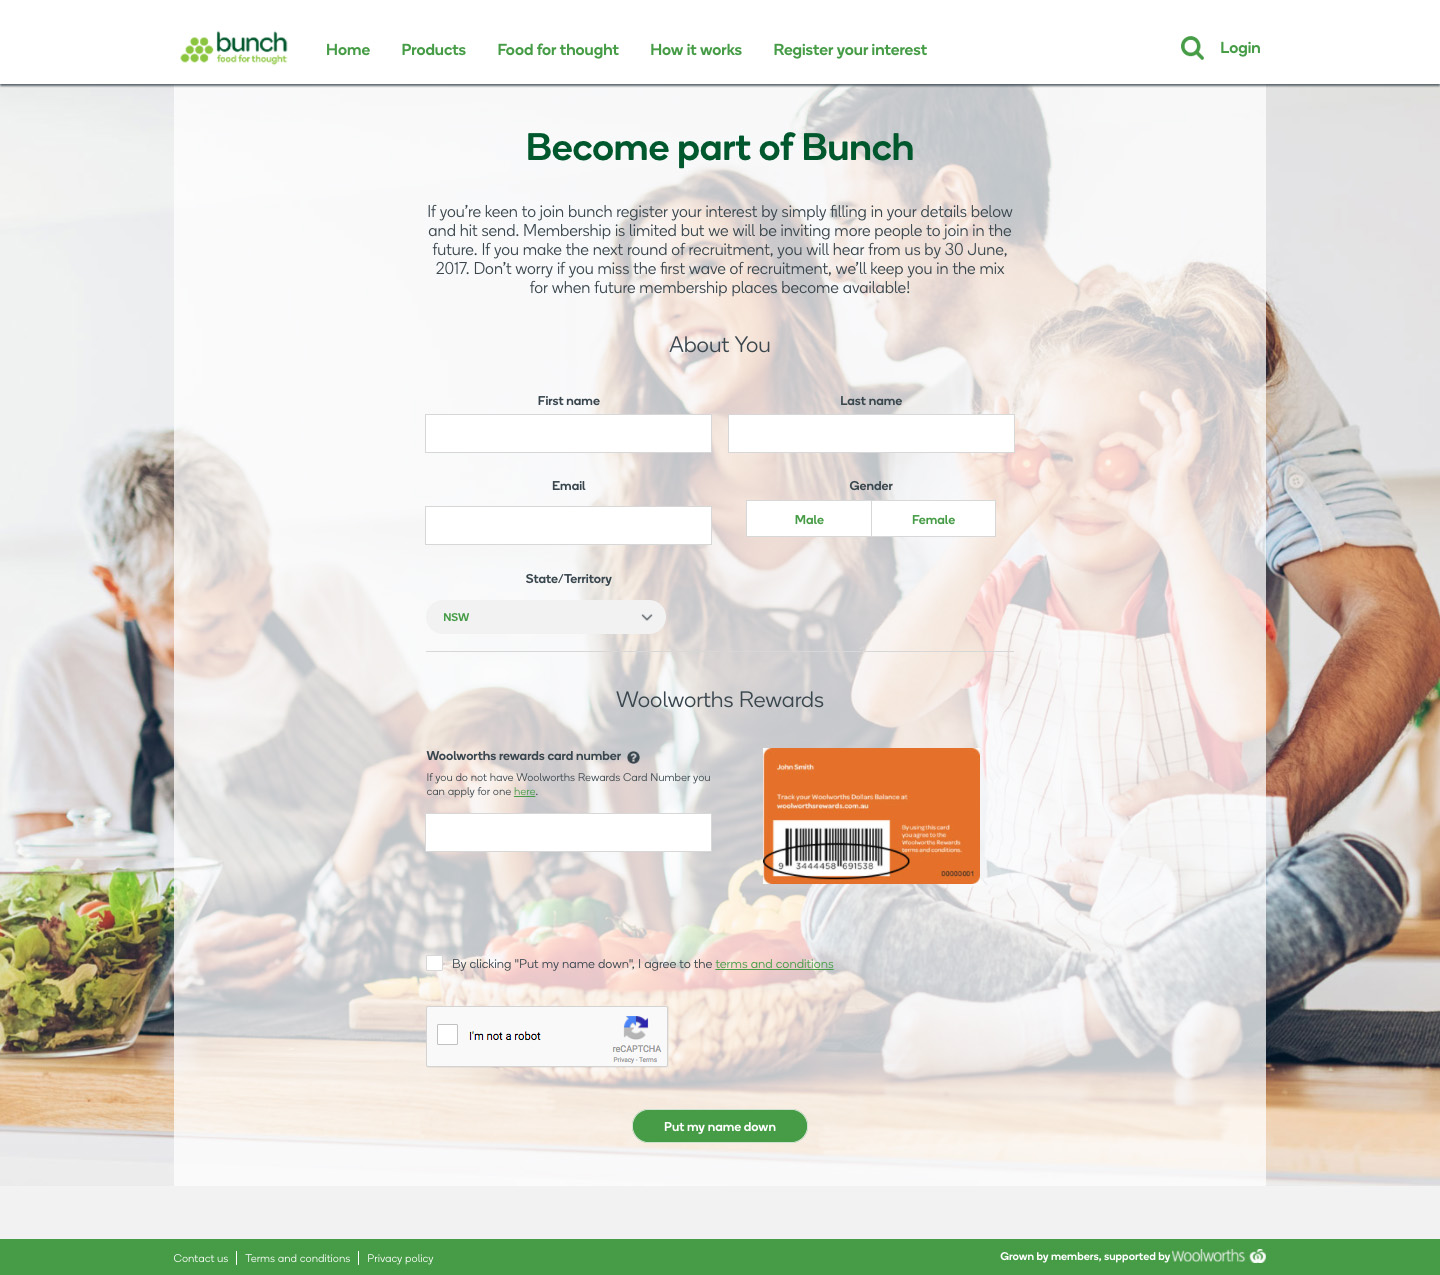 Woolworths launches australias largest supermarket customer for further information please contact woolworths press office 02 8885 1033 or mediawoolworths negle Images